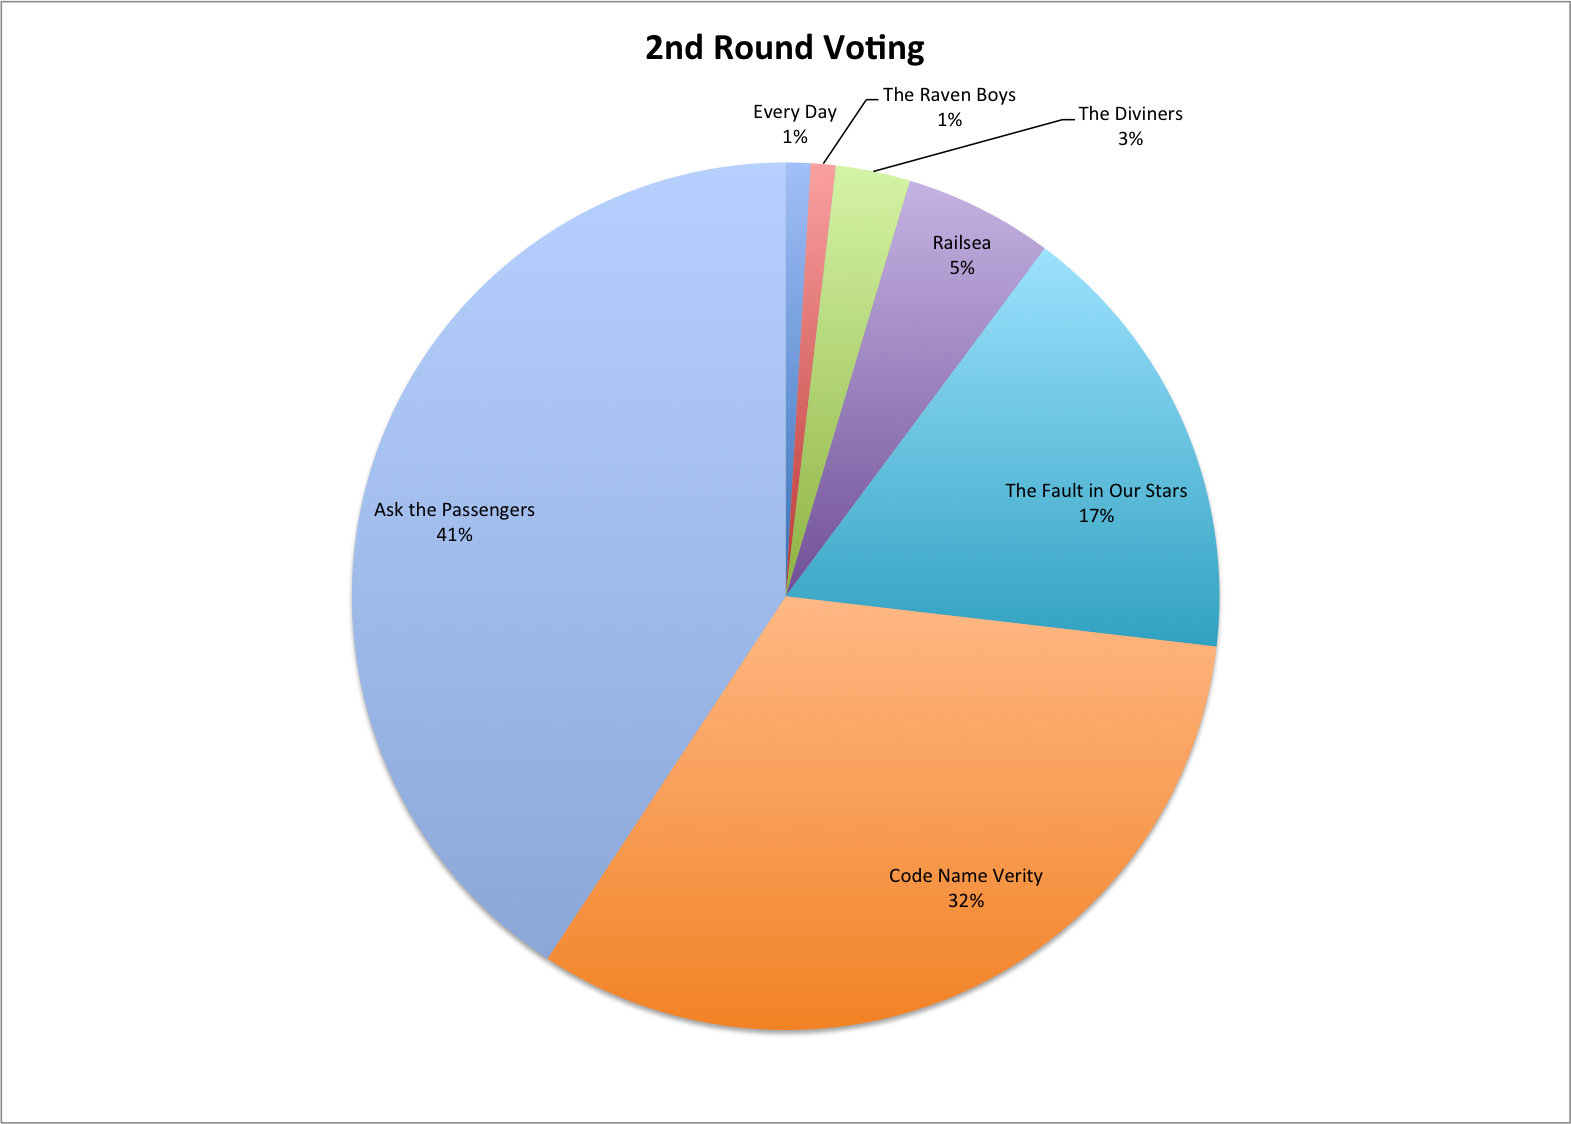 2nd Round Voting Pie Chart